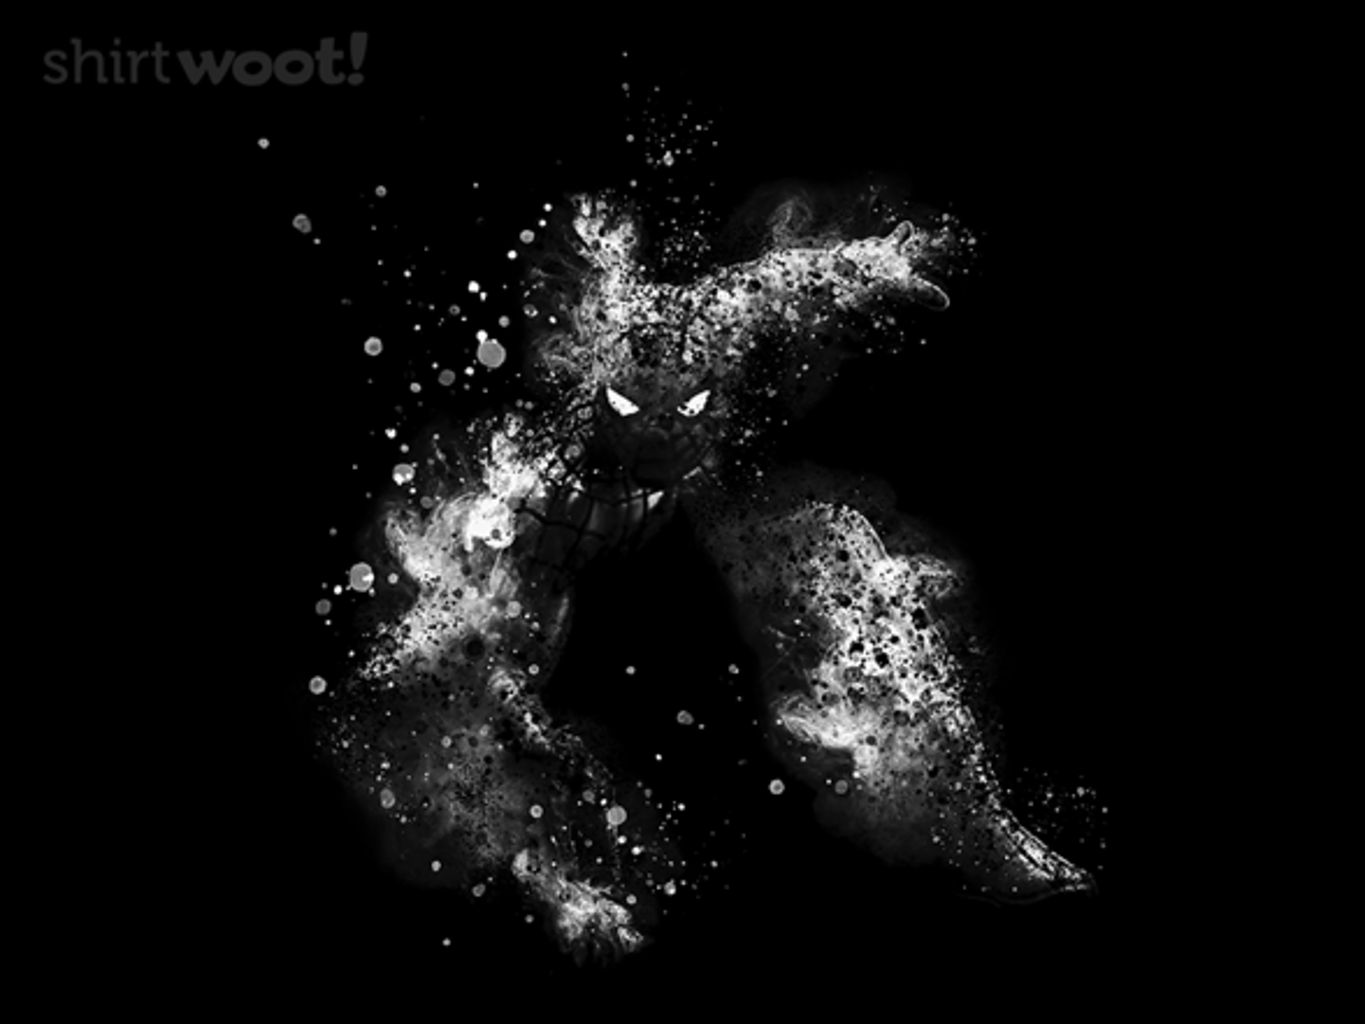 Woot!: I Don't Feel So Good